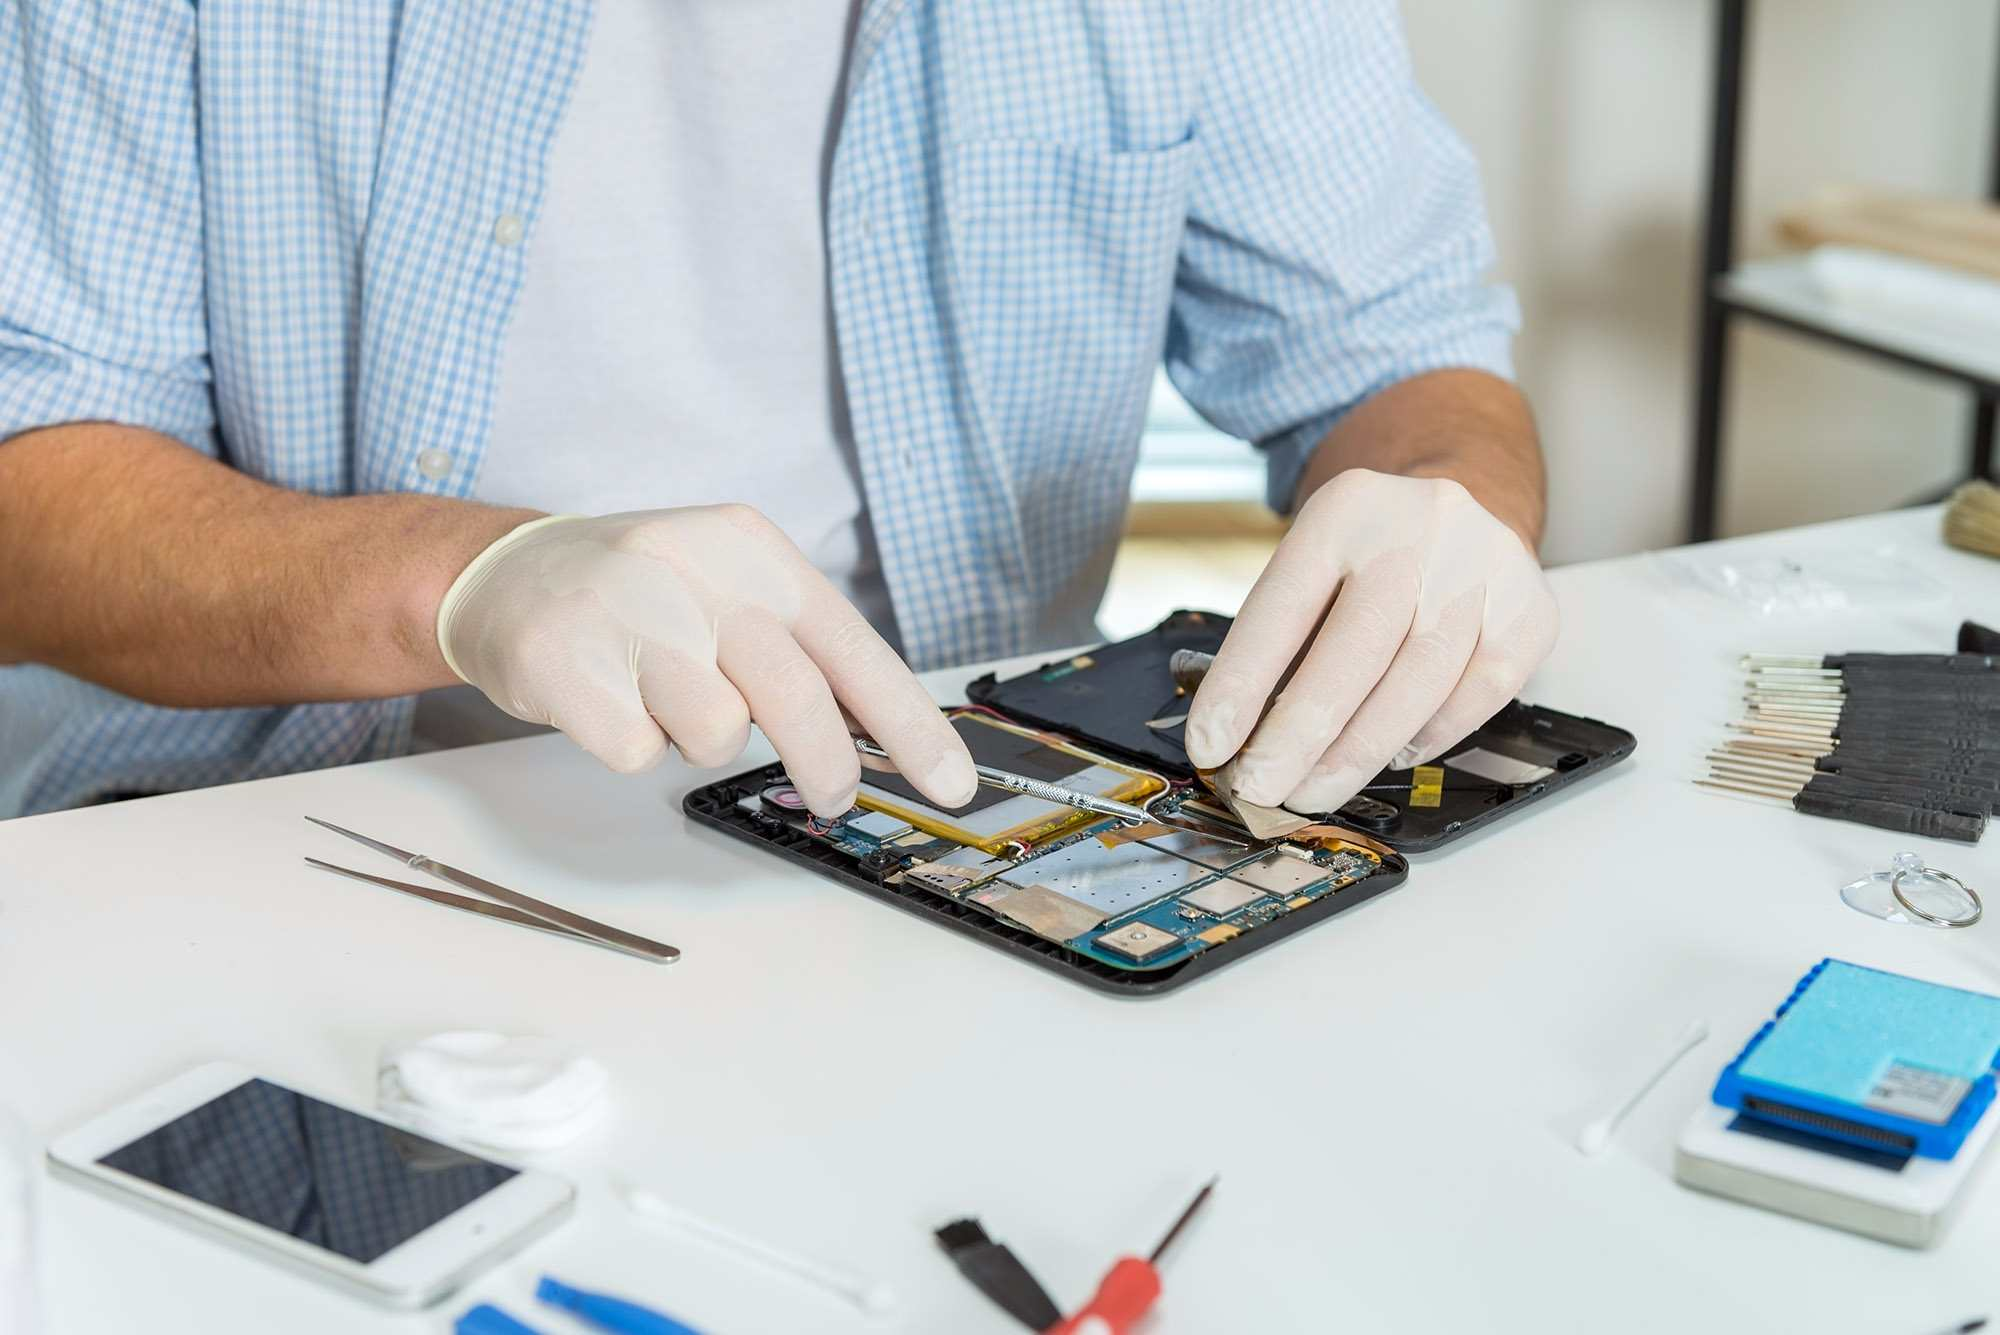 Avoid Multi-Touch Issues With IPhone Screen Repair In Parramatta After Getting Help From Authorised Service Providers